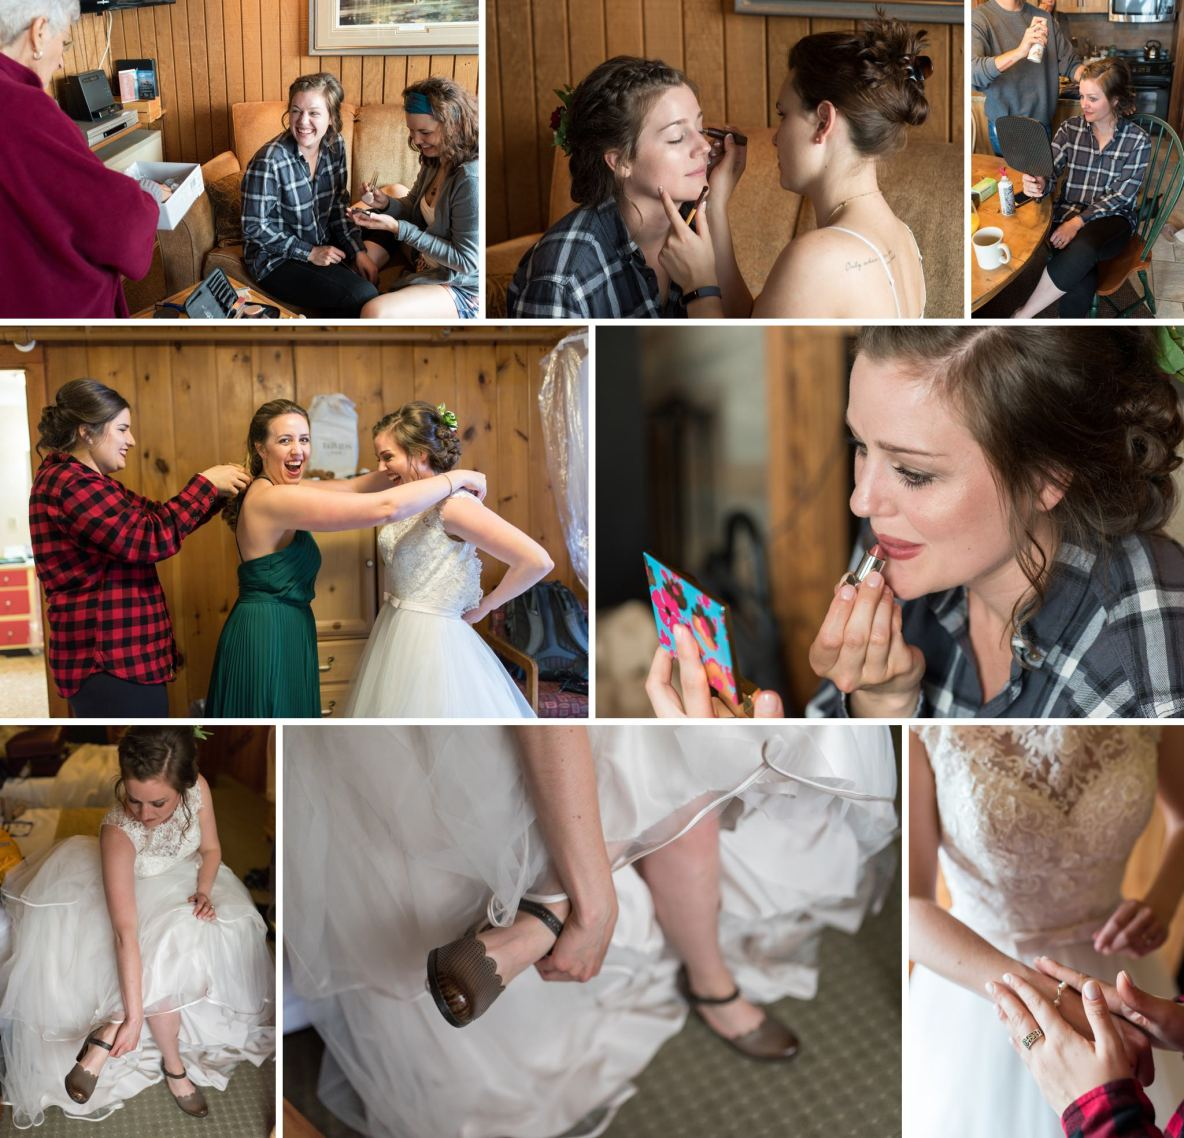 Photos of the bride getting ready at the resort.